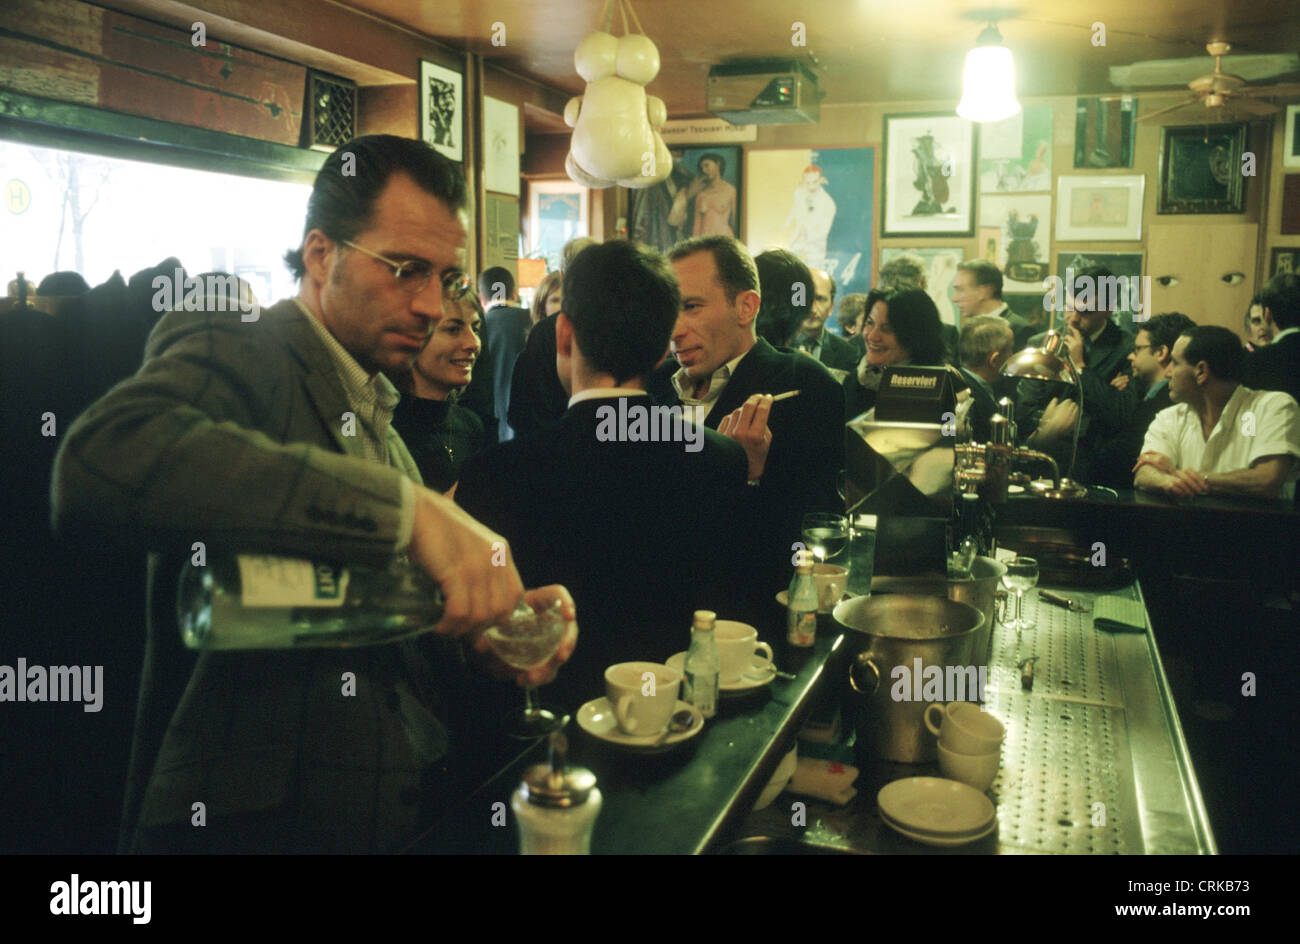 Guests talk at the Paris Bar - Stock Image